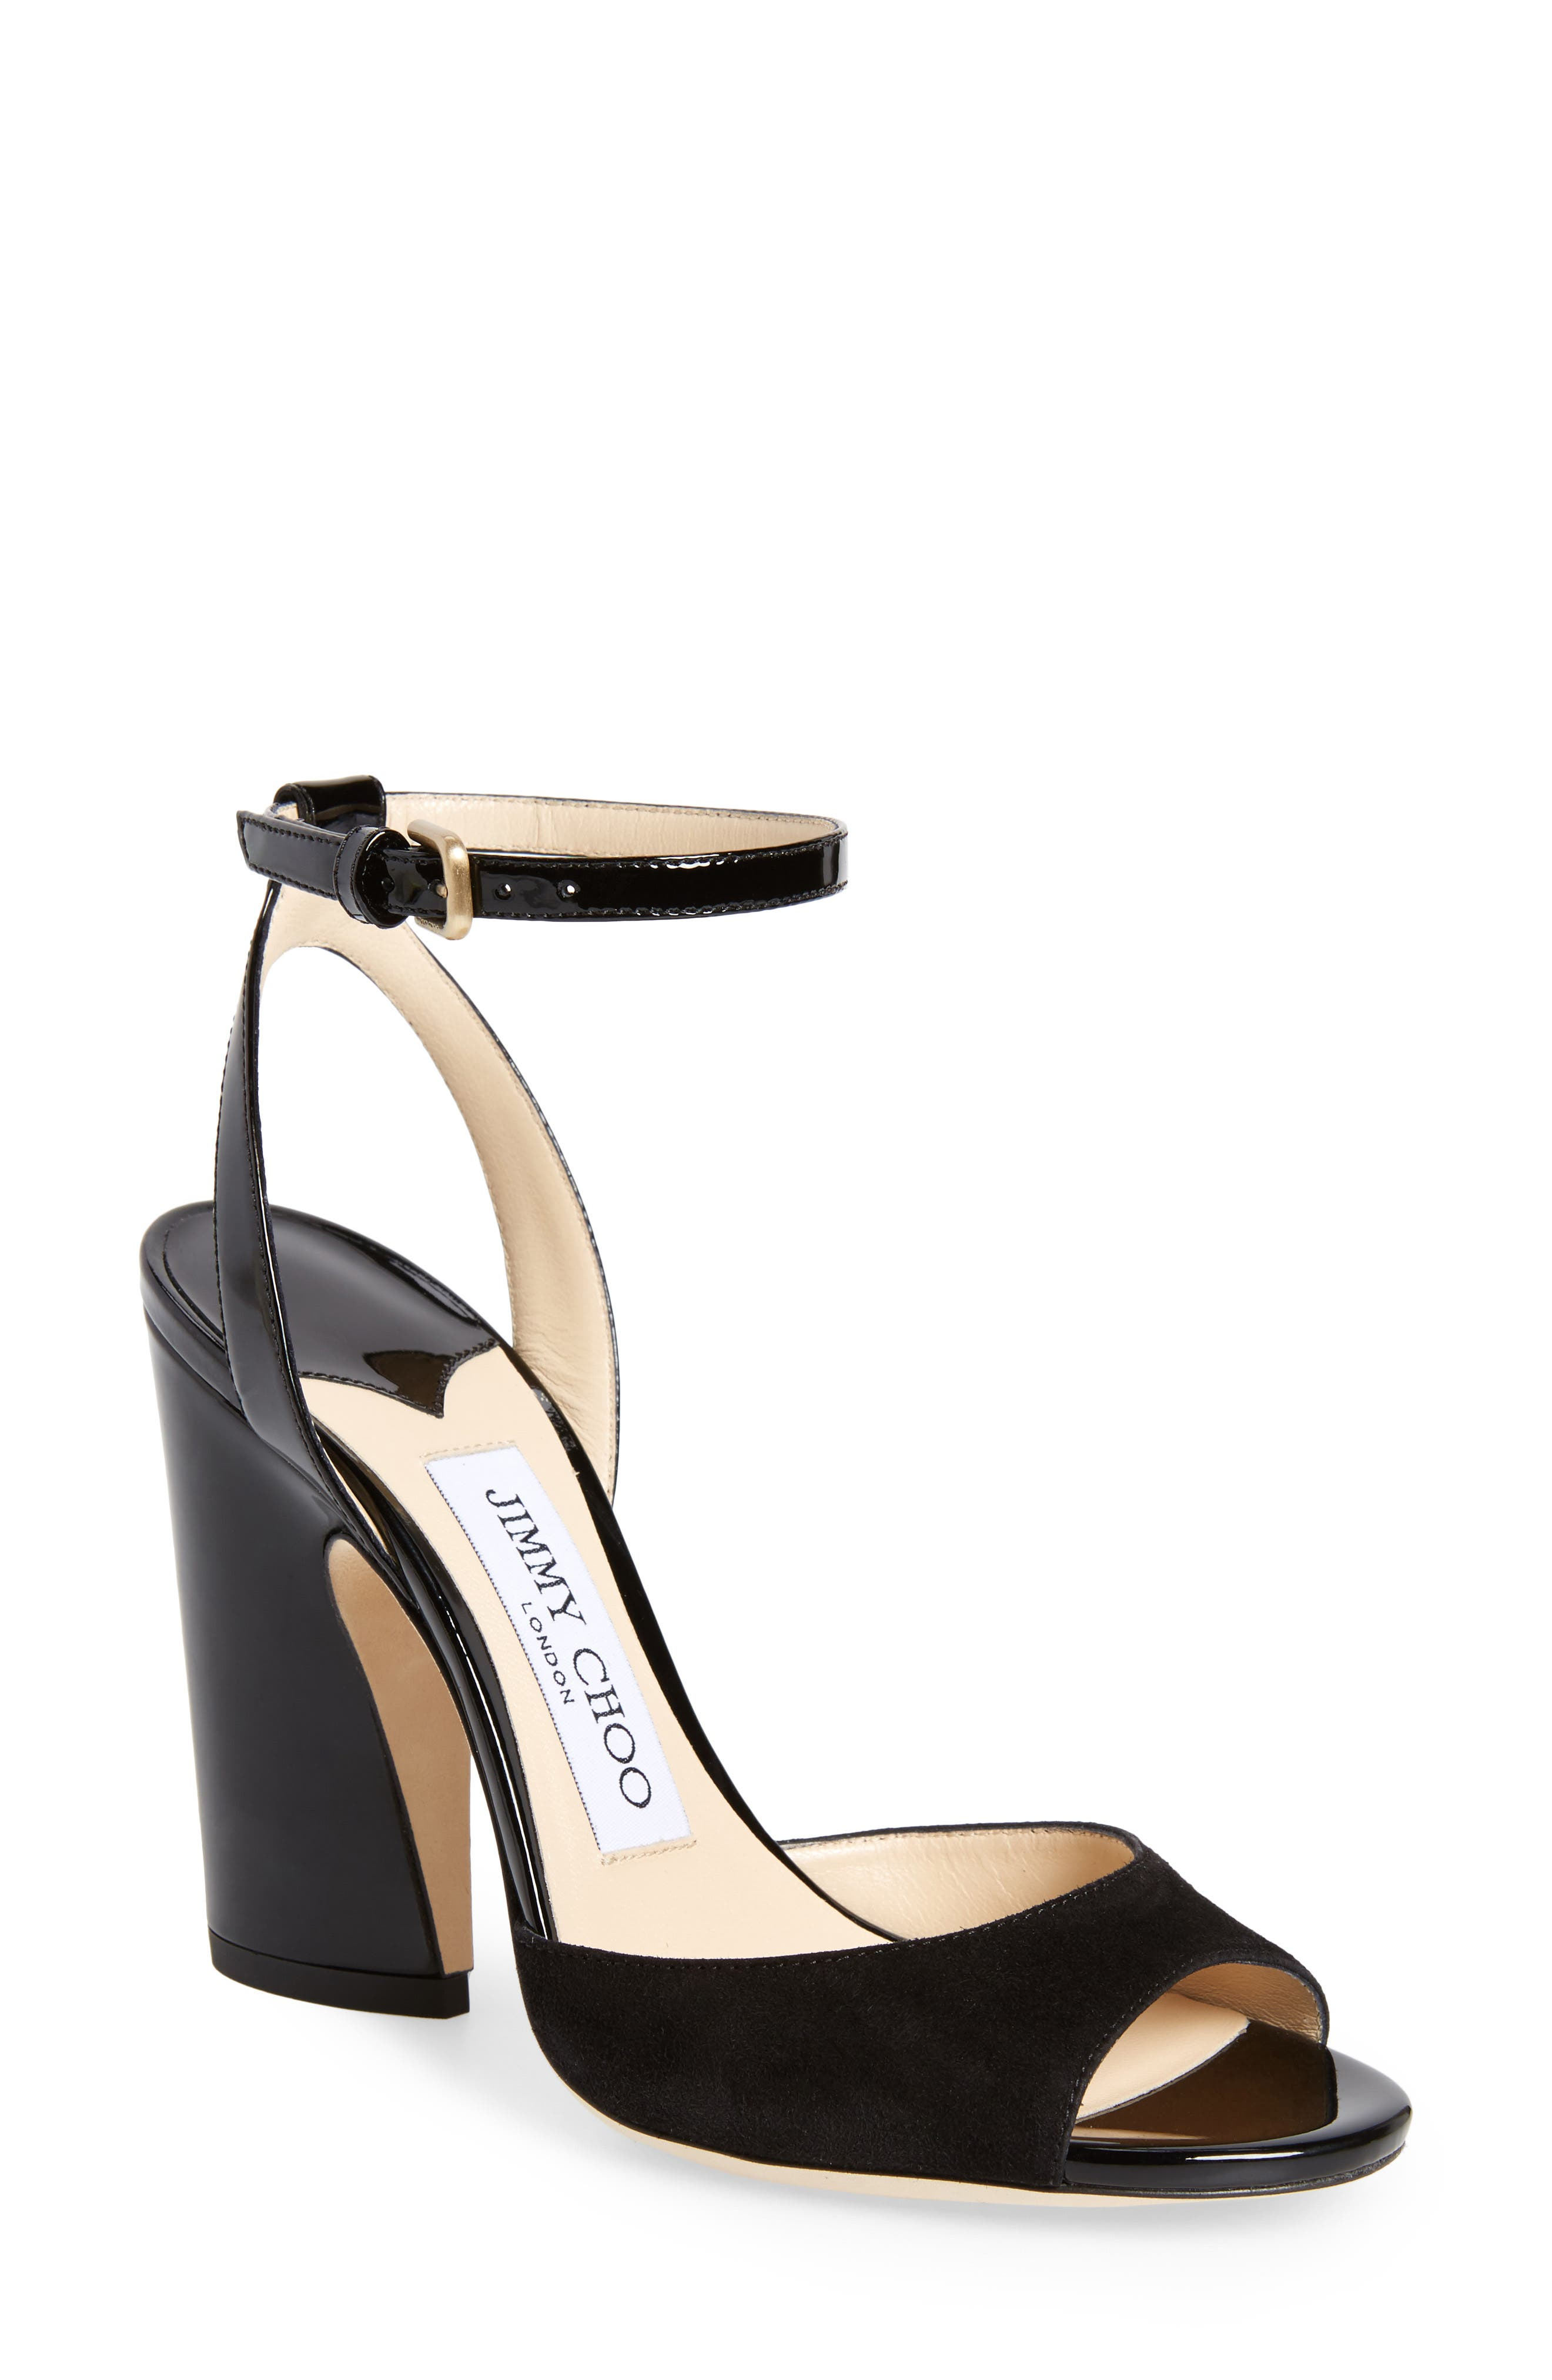 Alternate Image 1 Selected - Jimmy Choo Miranda Sandal (Women)